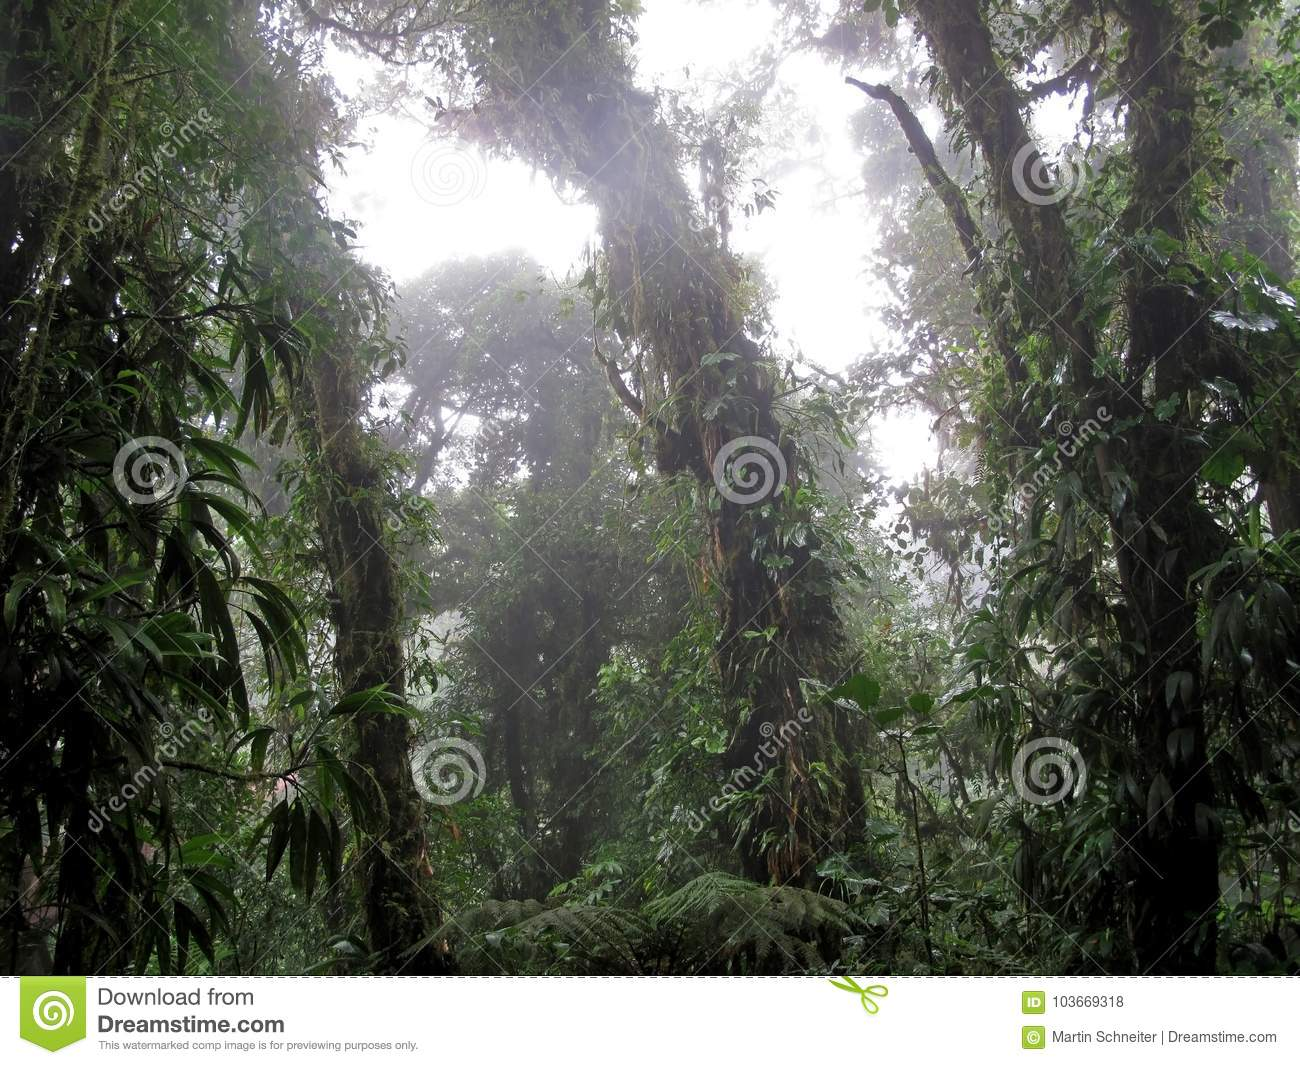 Cloud Forest Of Reserva Biologica Bosque Nuboso Monteverde Costa Rica Stock Photo Image Of Misty Conservation 103669318